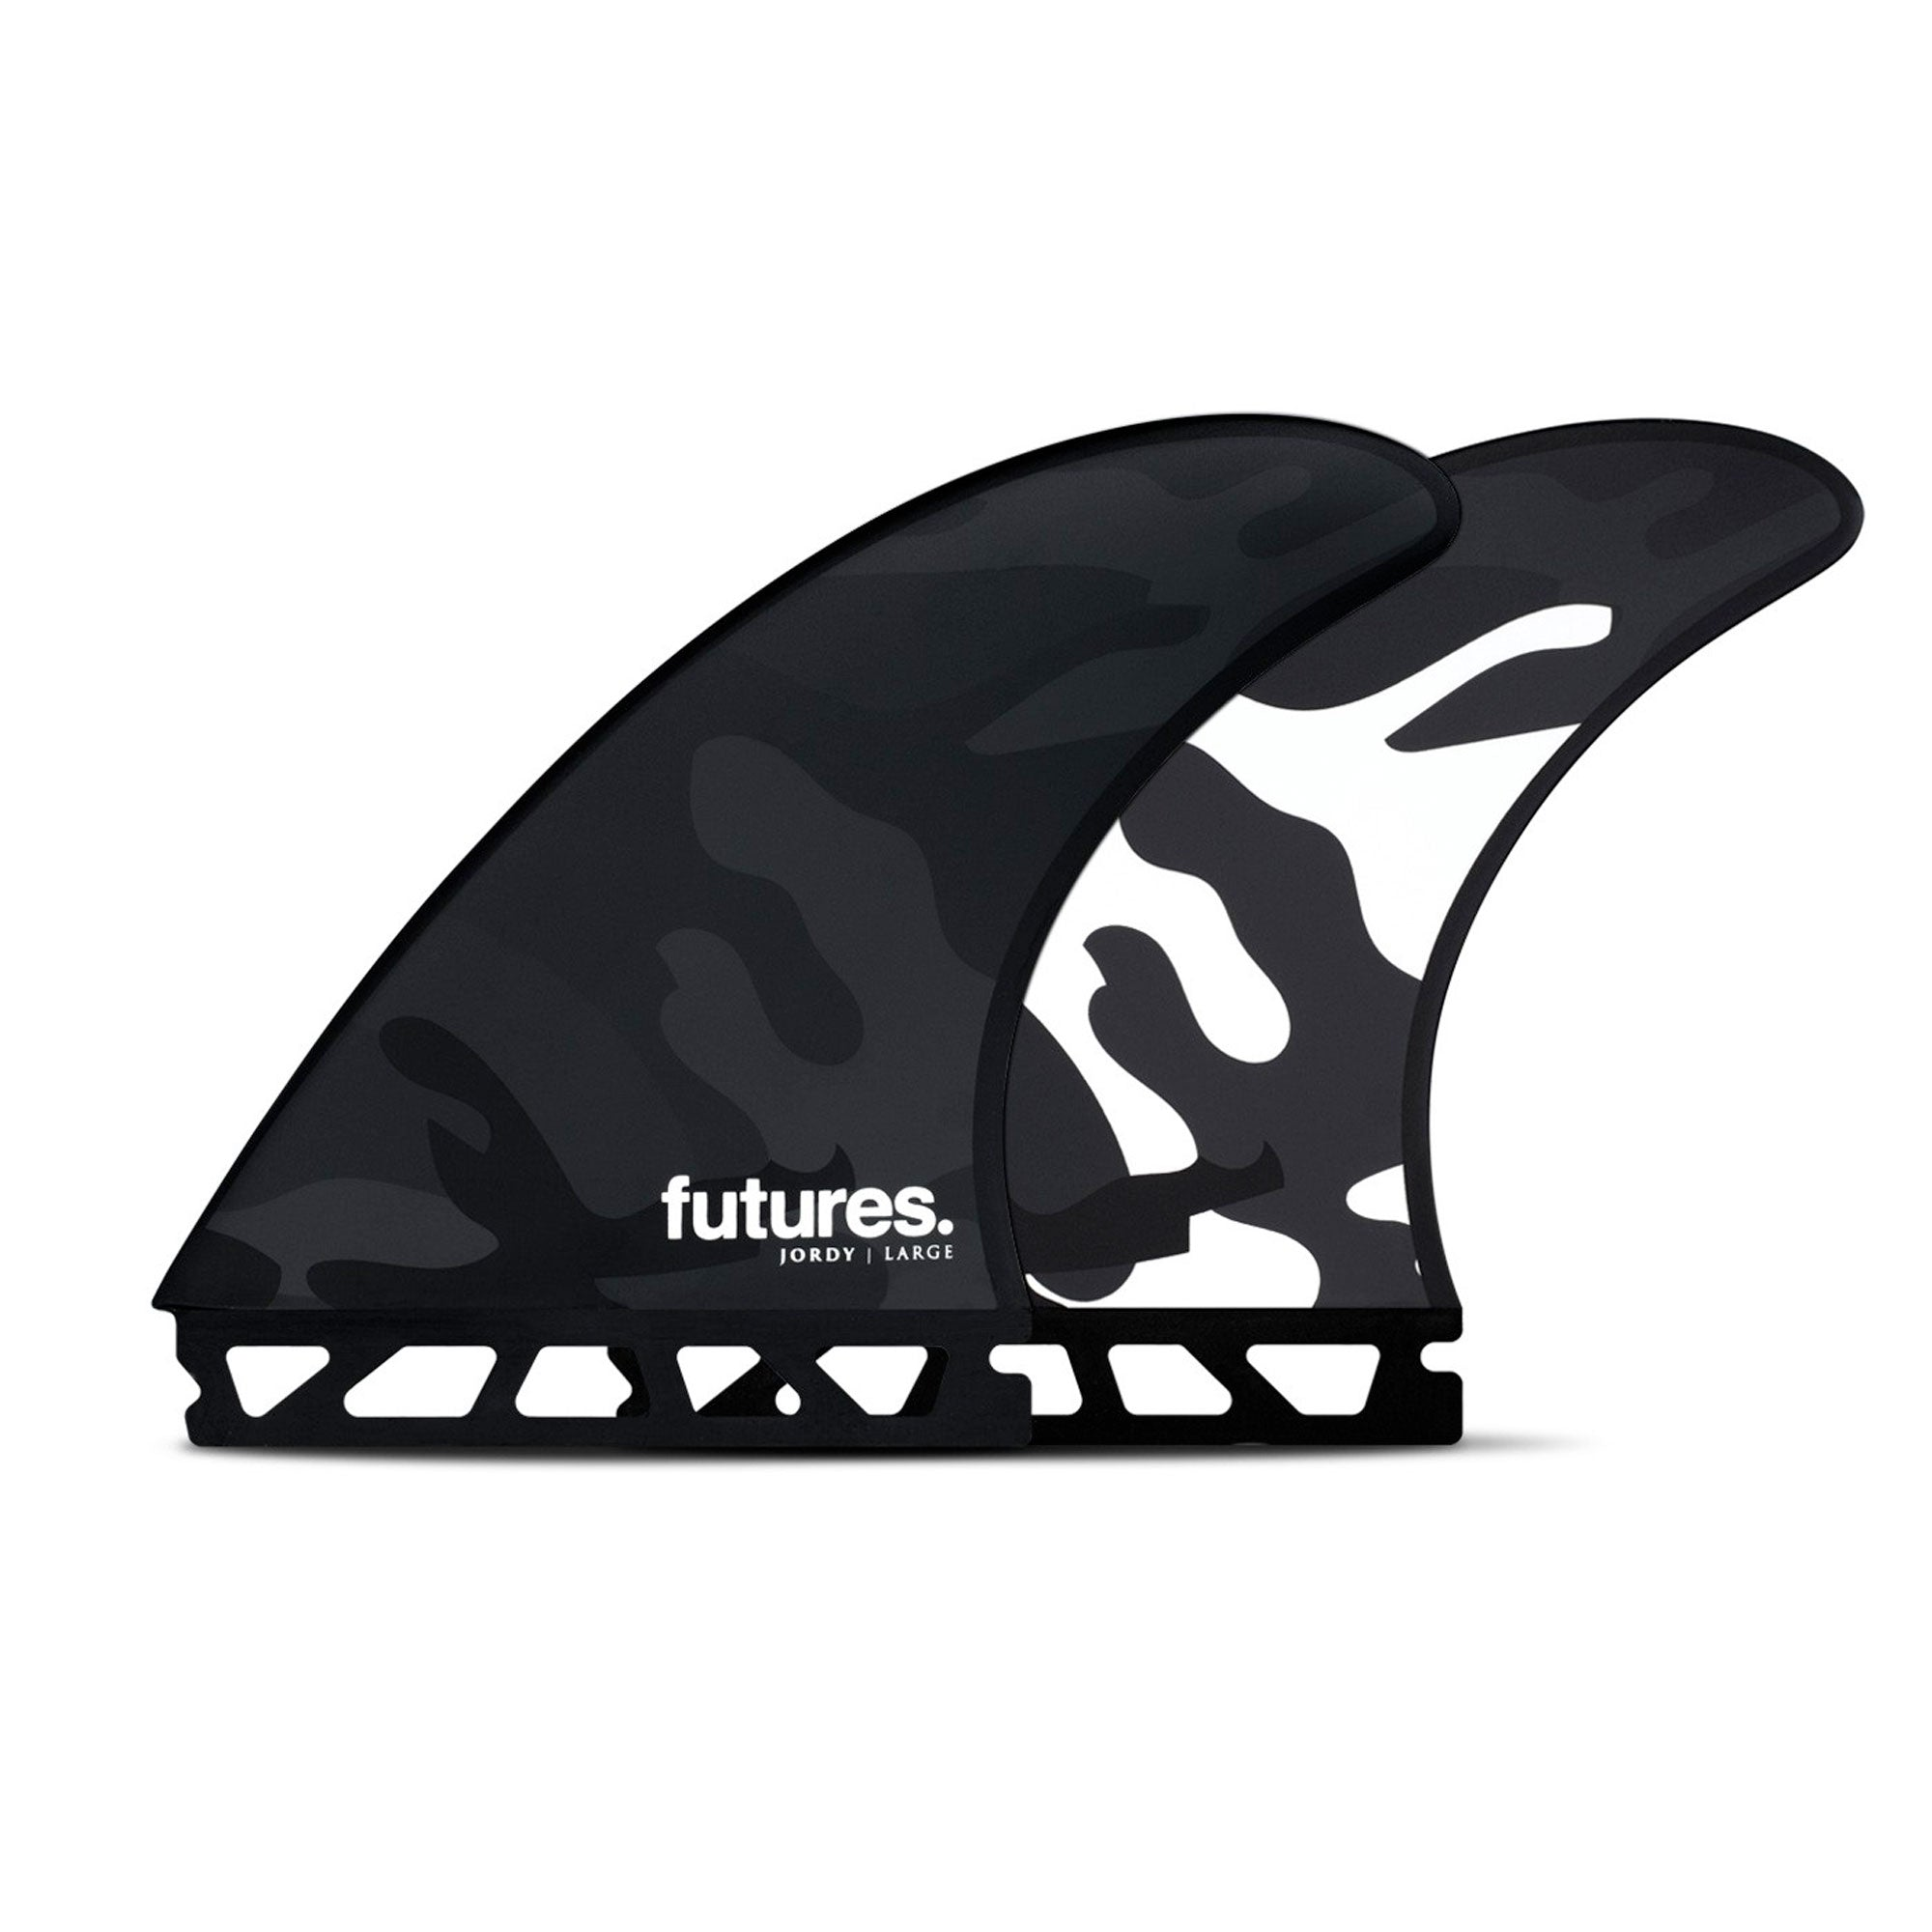 Futures Jordy Smith Signature Thruster Fin Set